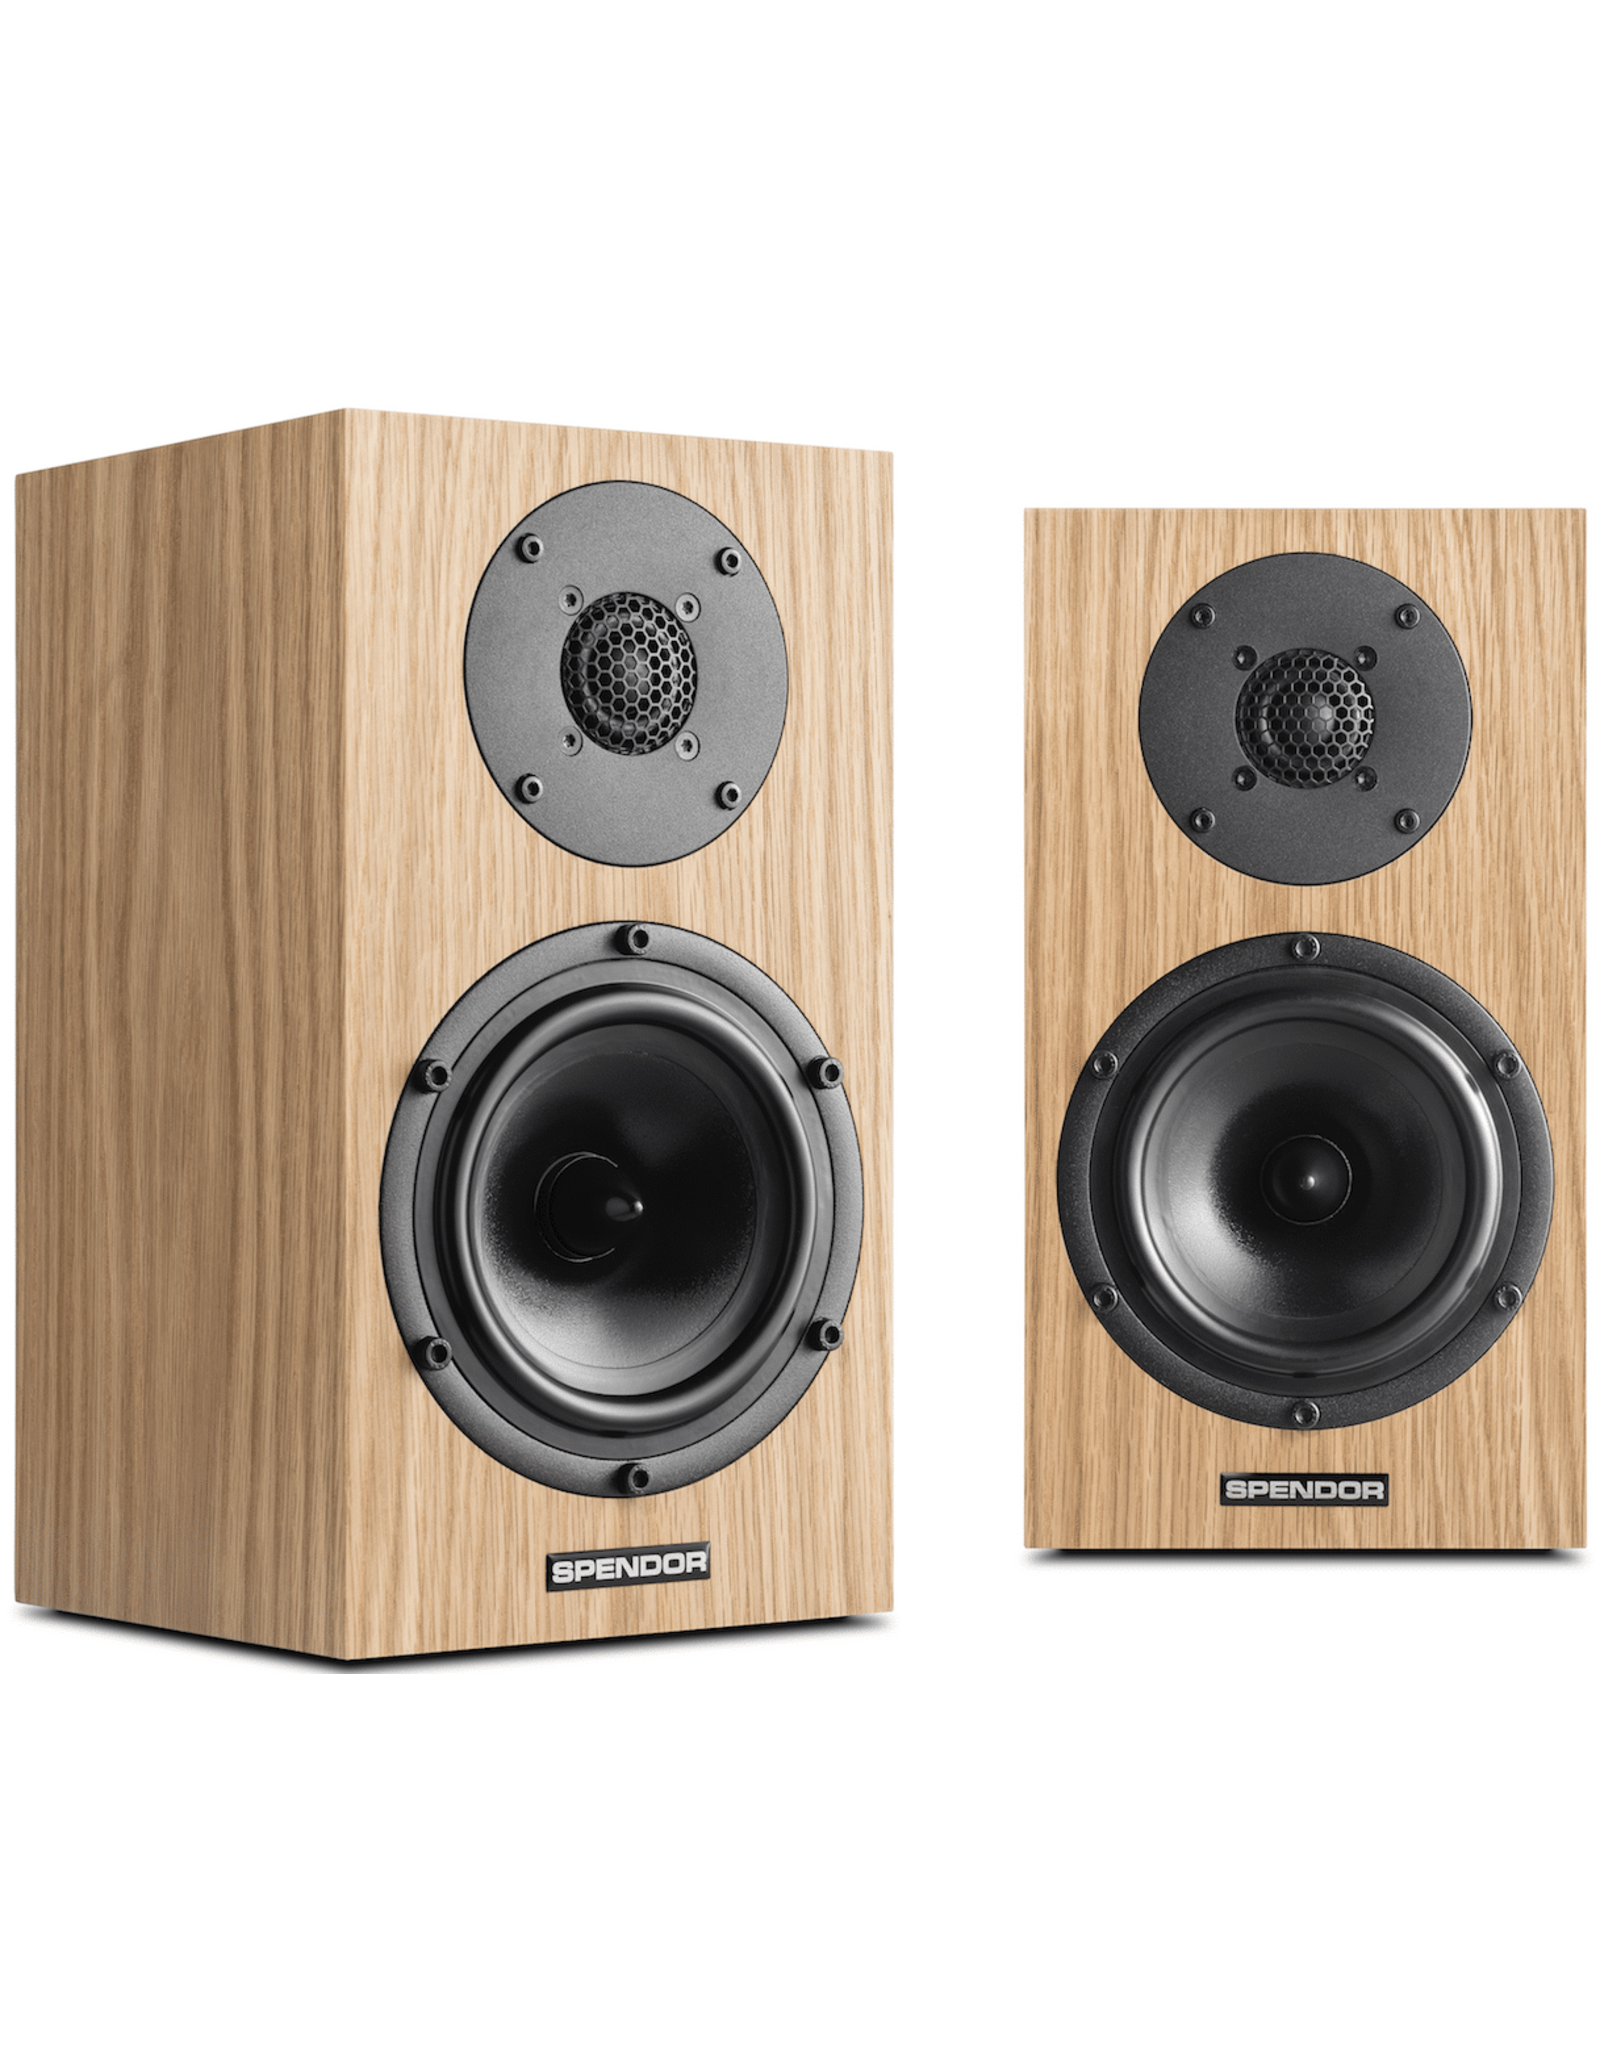 Spendor Spendor A1 Bookshelf Speakers Natural Oak EX-DEMO (Not Used)